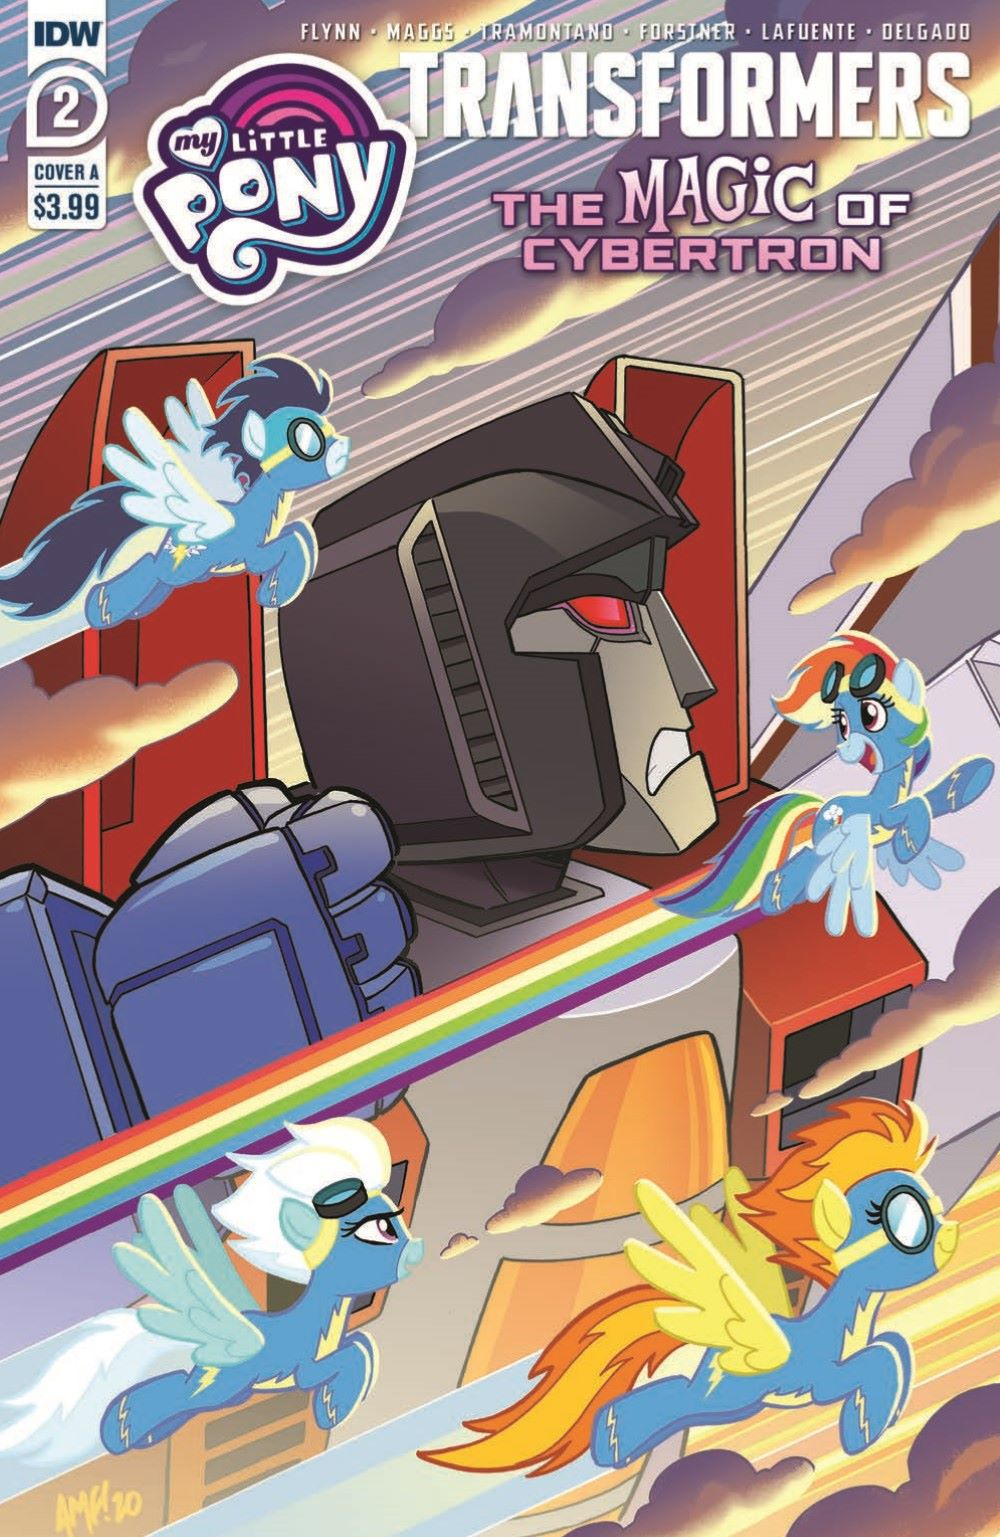 TFMLP2-02-pr-1 ComicList Previews: MY LITTLE PONY TRANSFORMERS II #2 (OF 4)